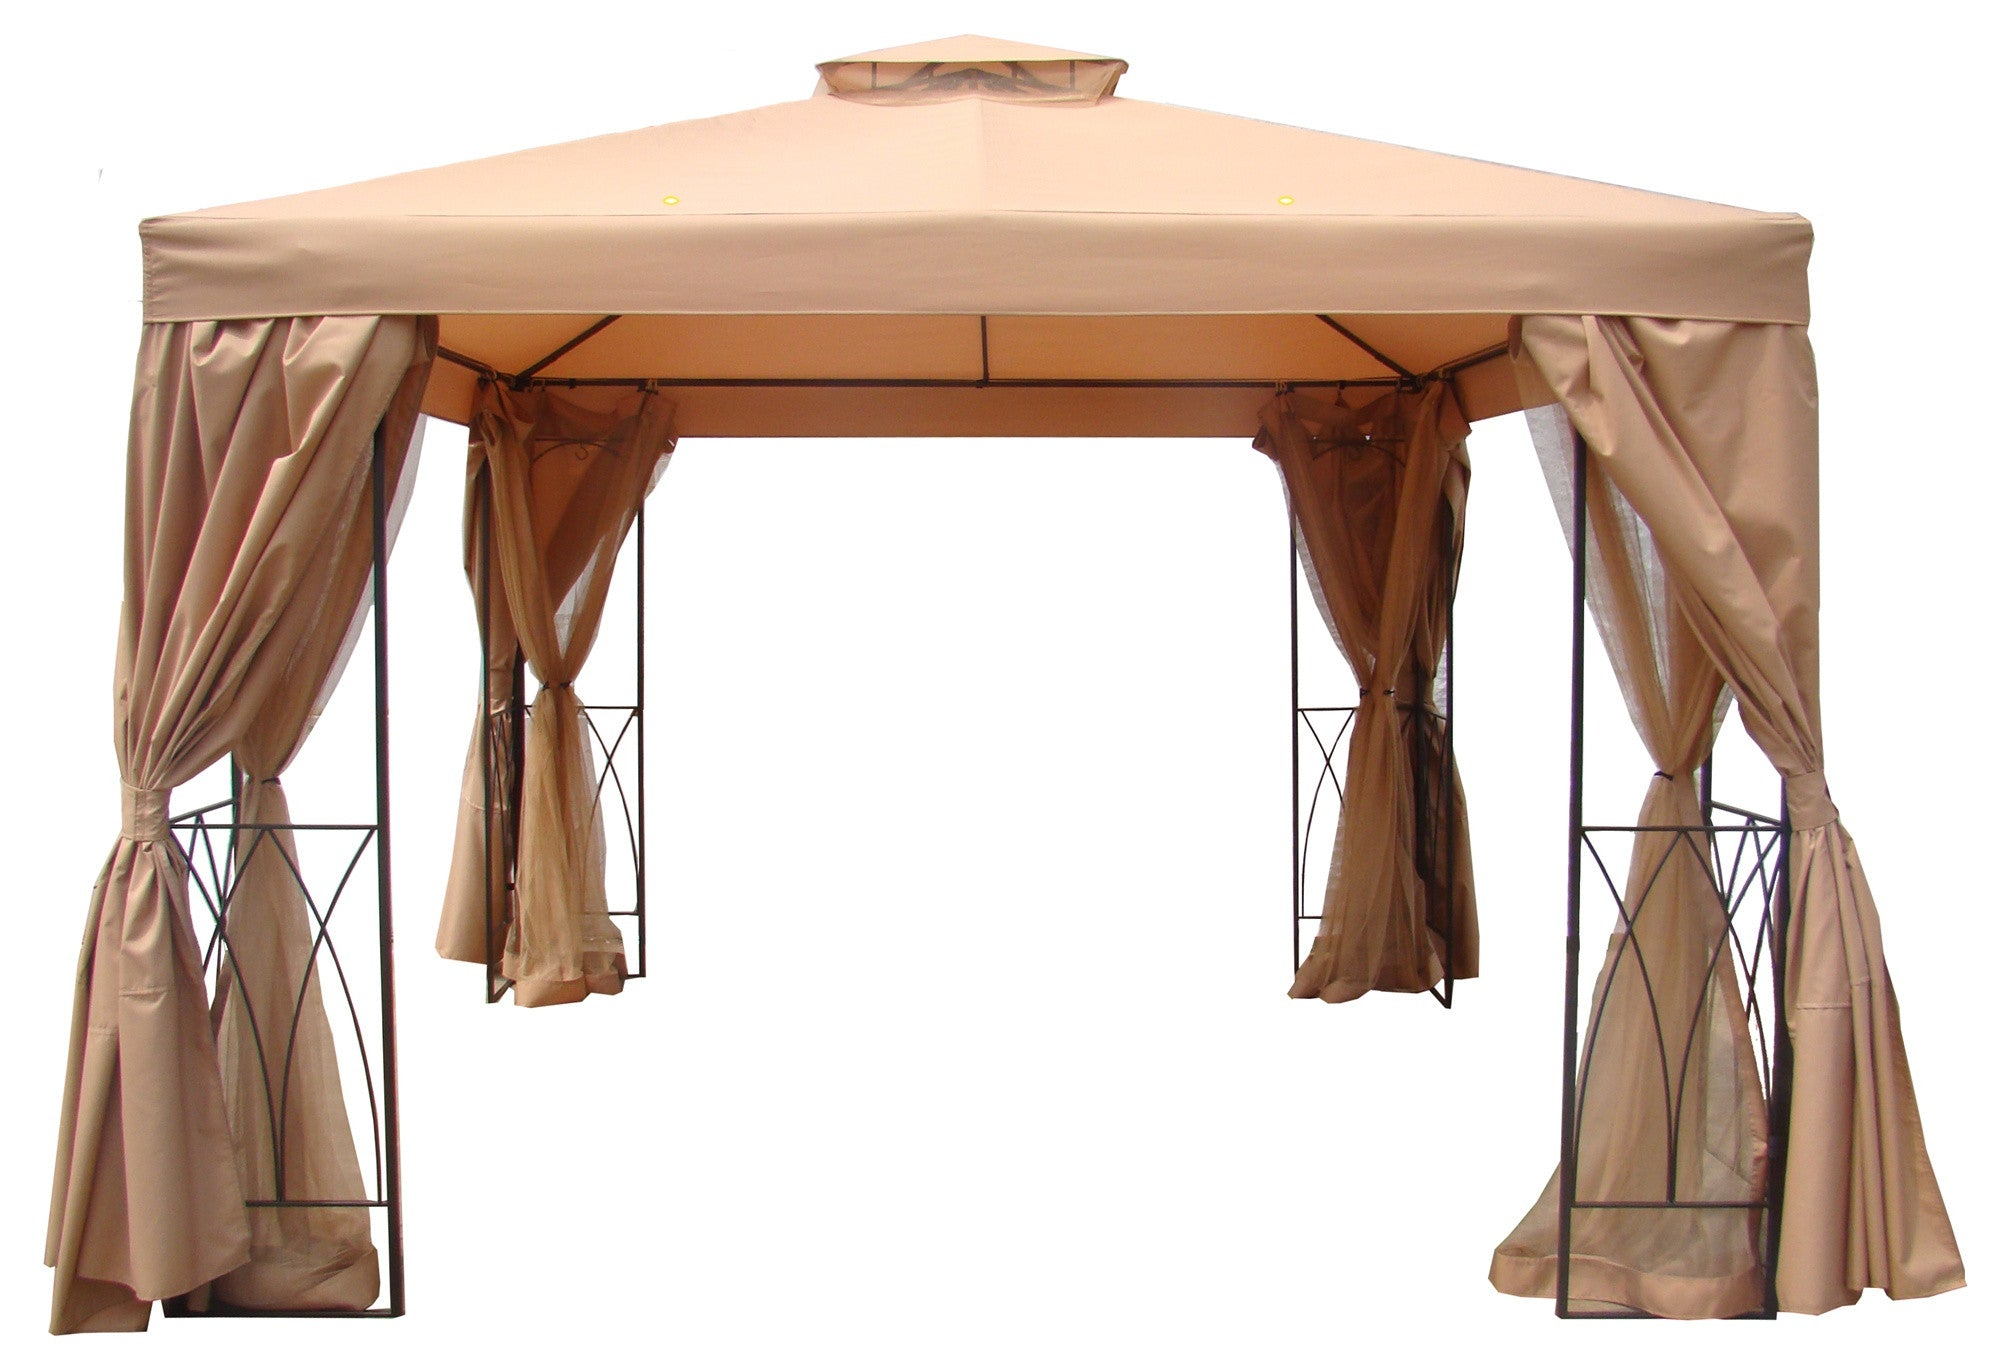 Replacement Canopy Top for TP-GAZ1207 10'x10' Gazebo - APEX GARDEN